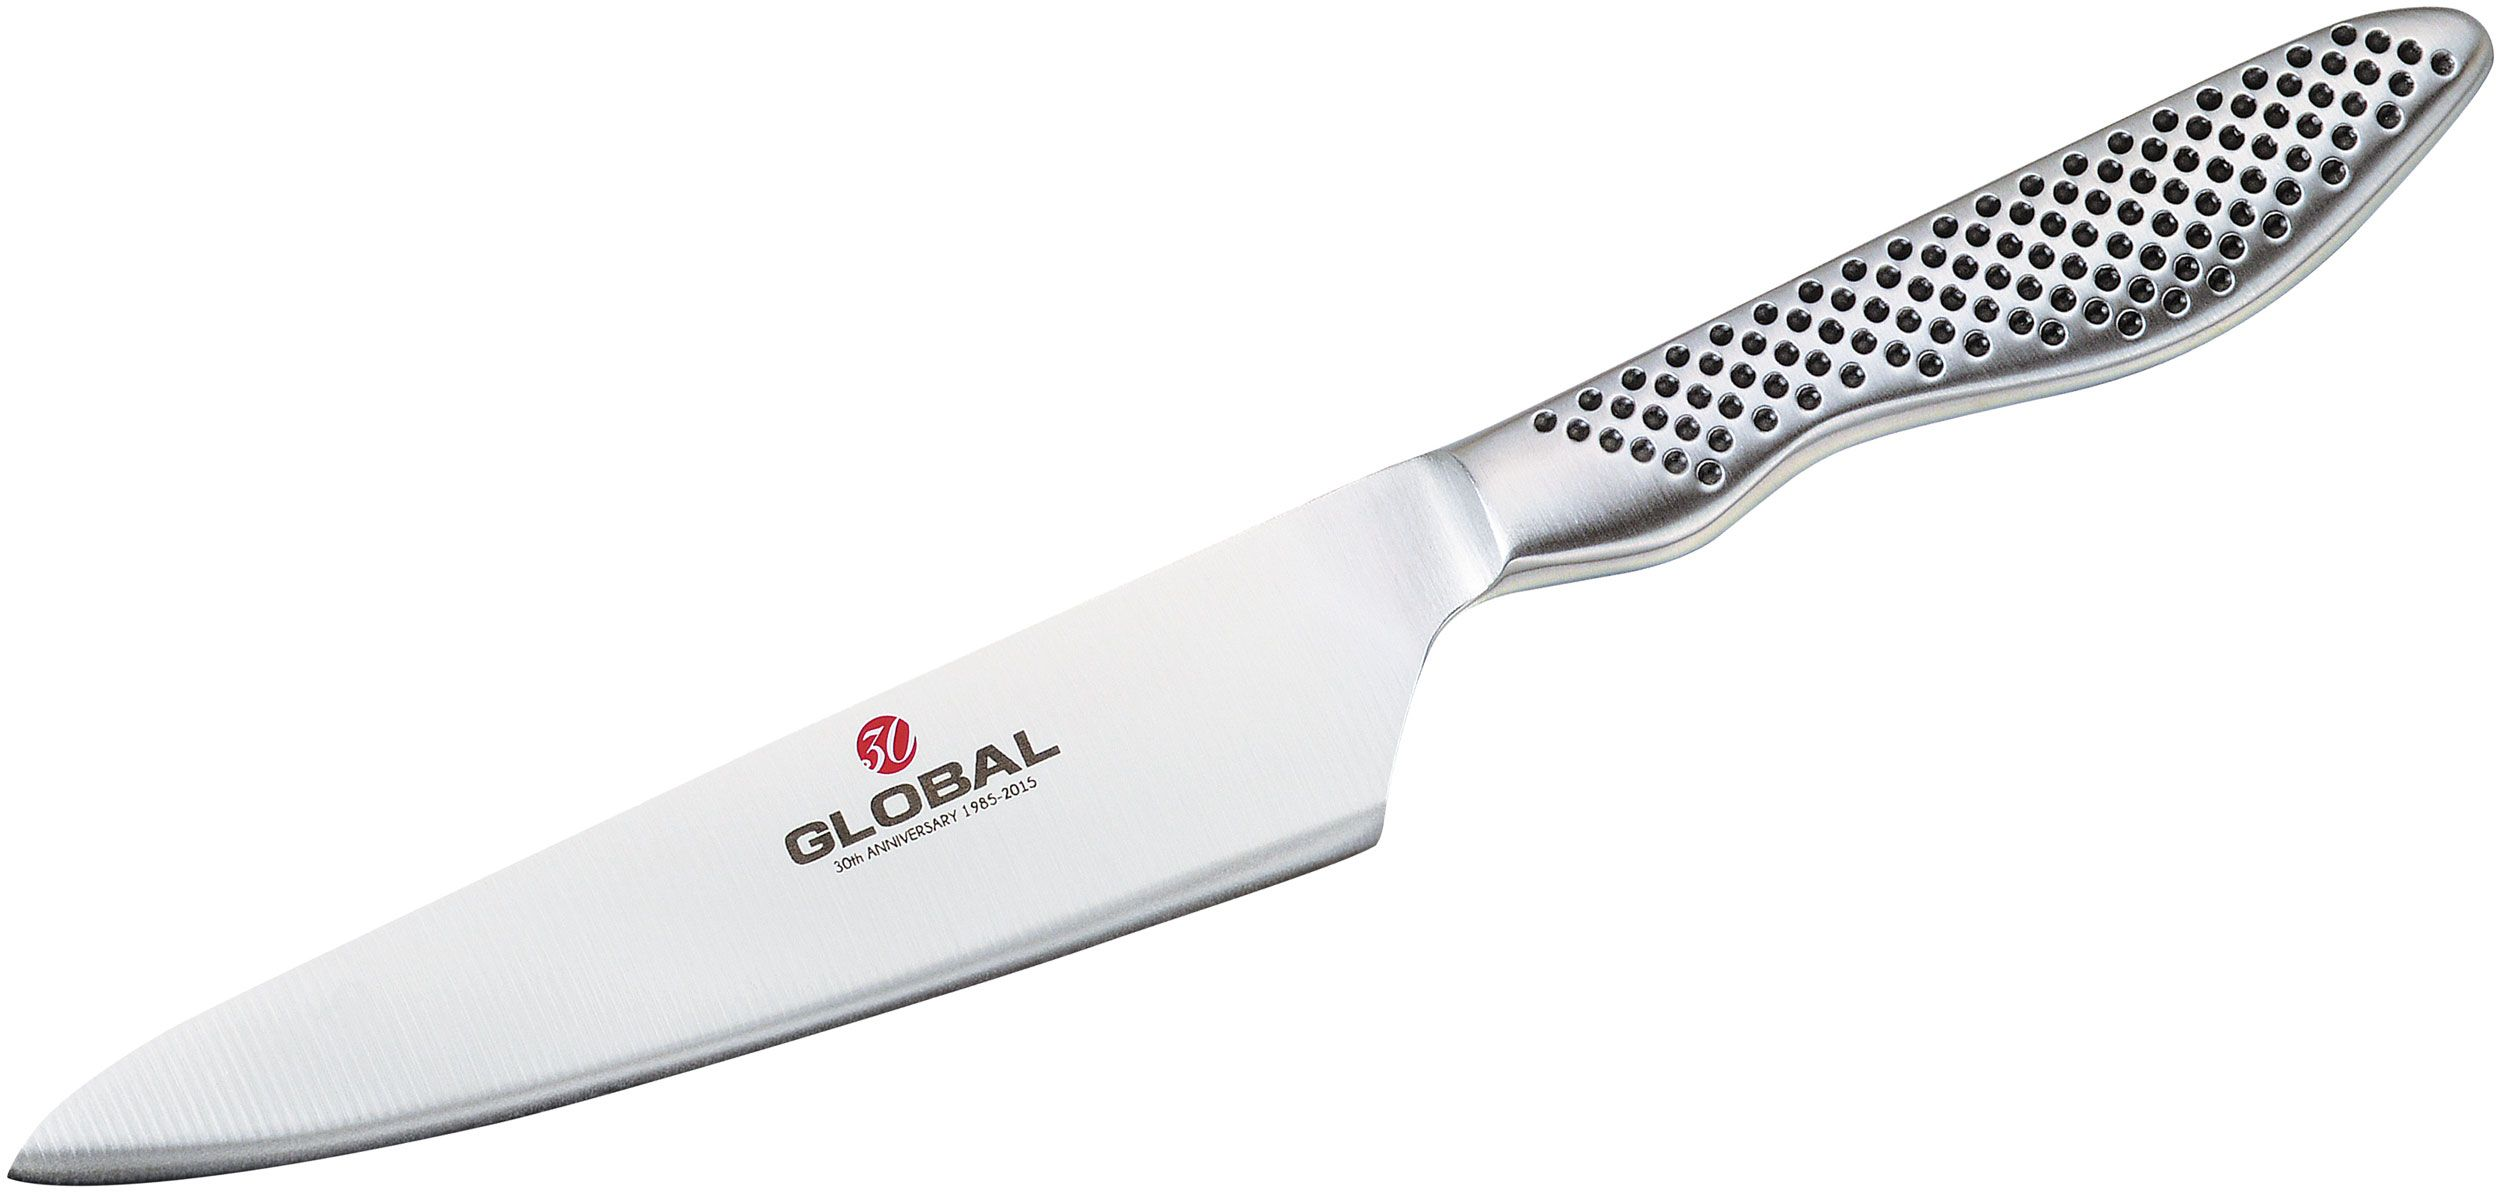 Global GS-89 30th Anniversary Kitchen 5 inch Chef's Knife